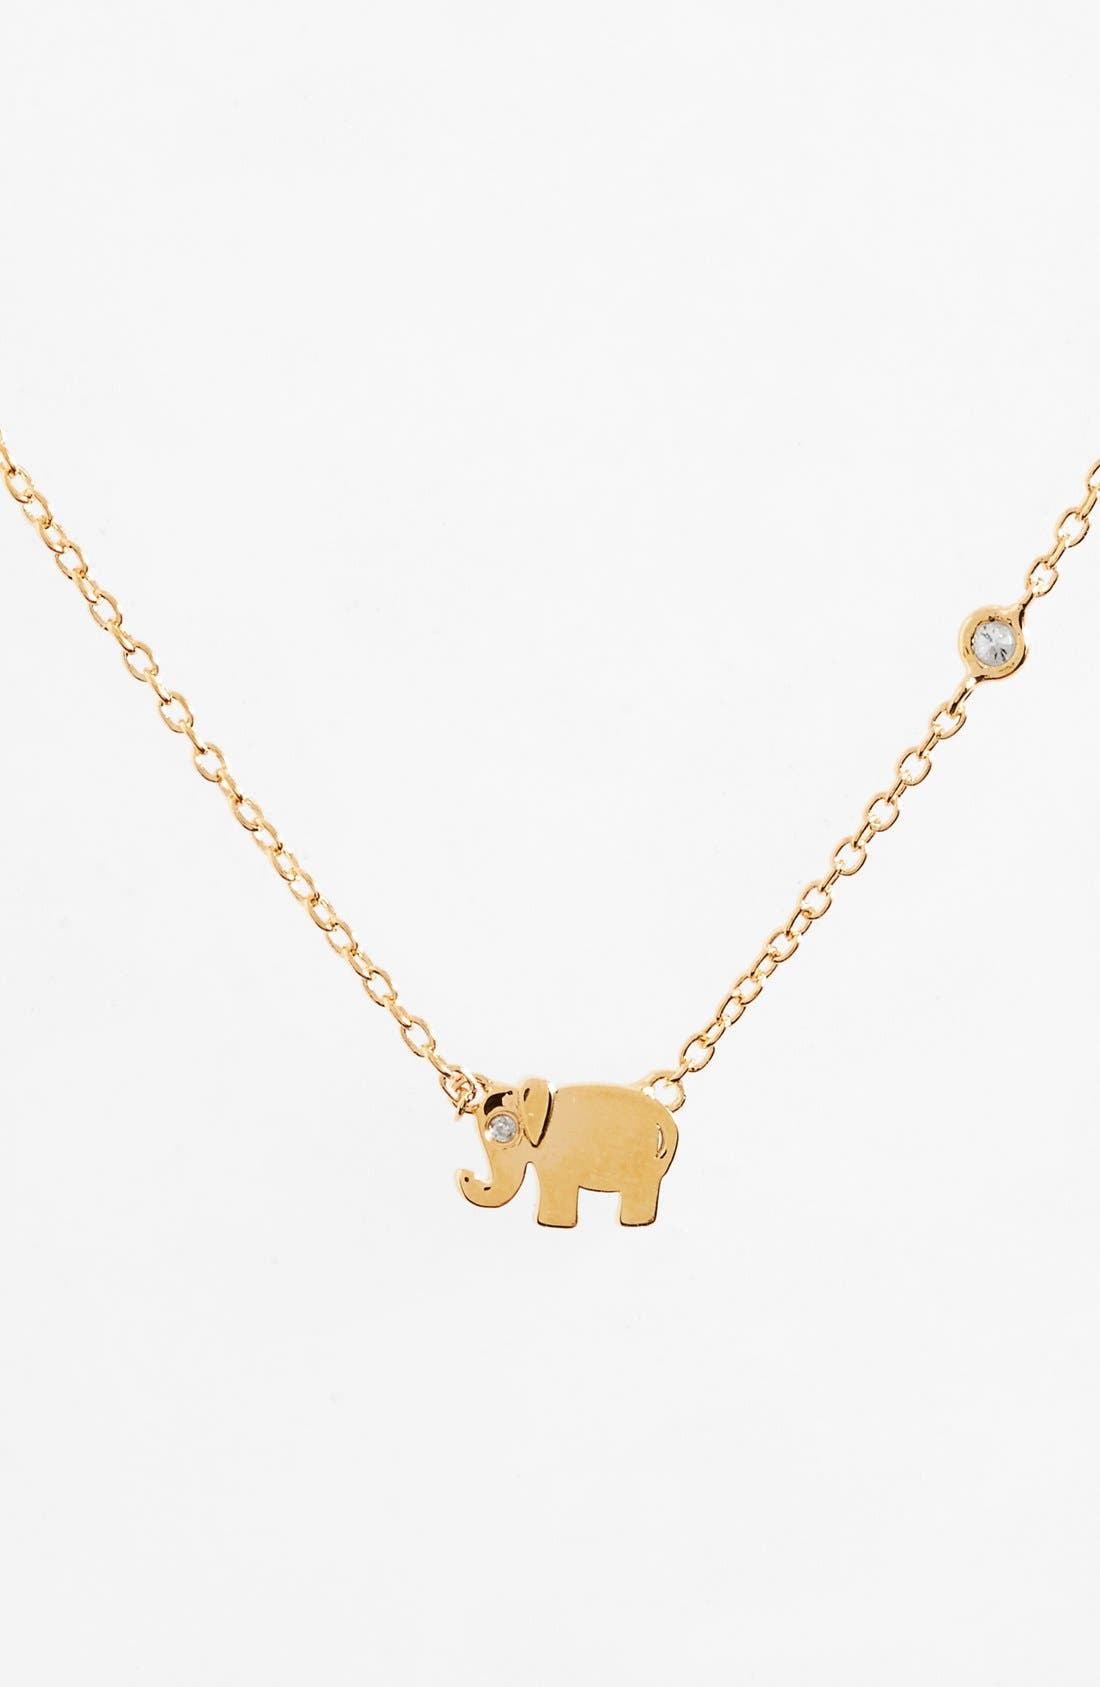 SHY by Sydney Evan Elephant Necklace,                             Main thumbnail 1, color,                             Gold